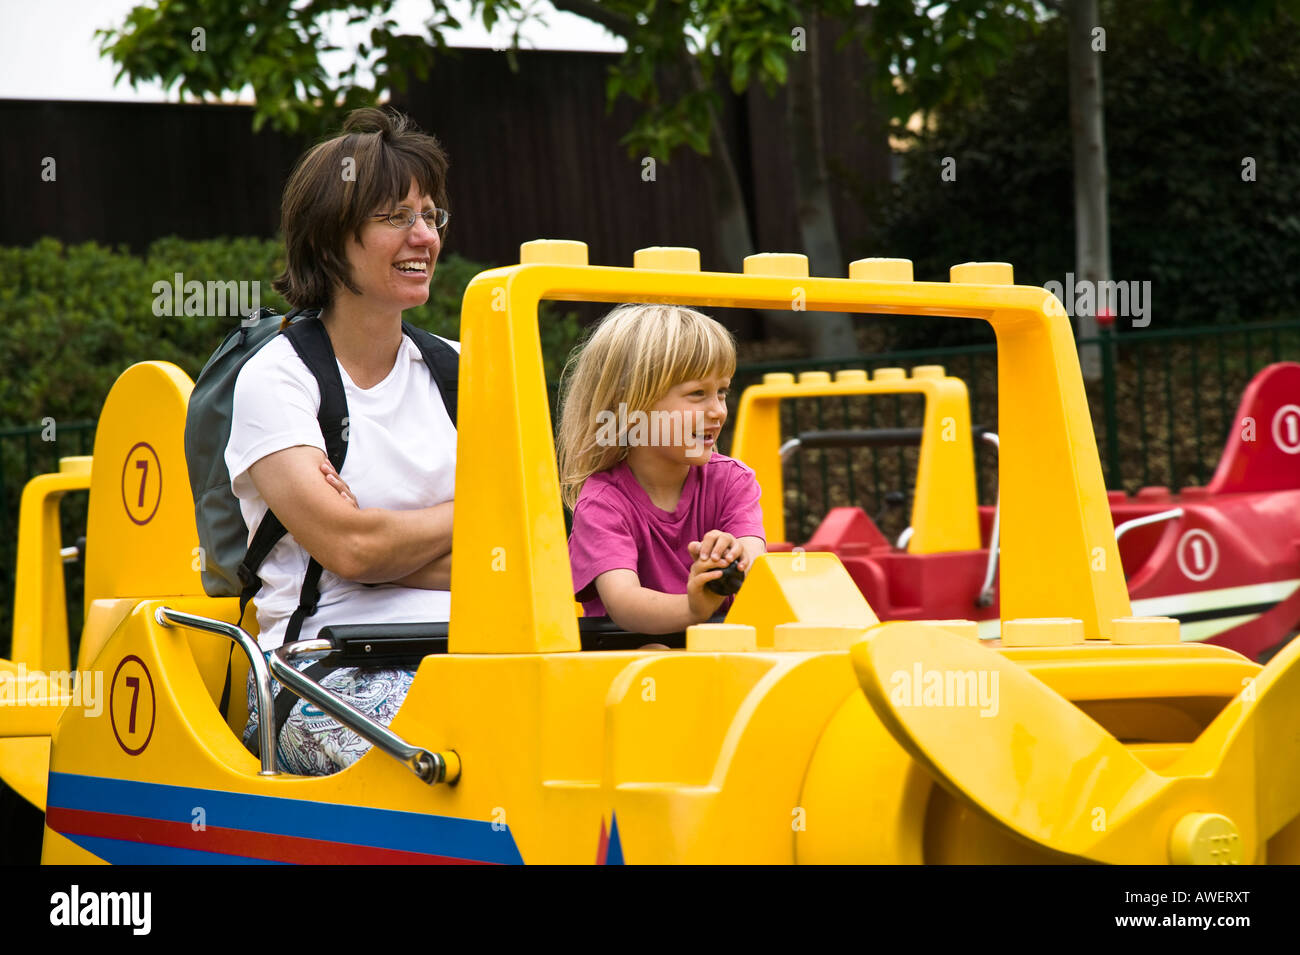 Mom and daughter on a ride Legoland Carlsbad, California, USA Stock Photo